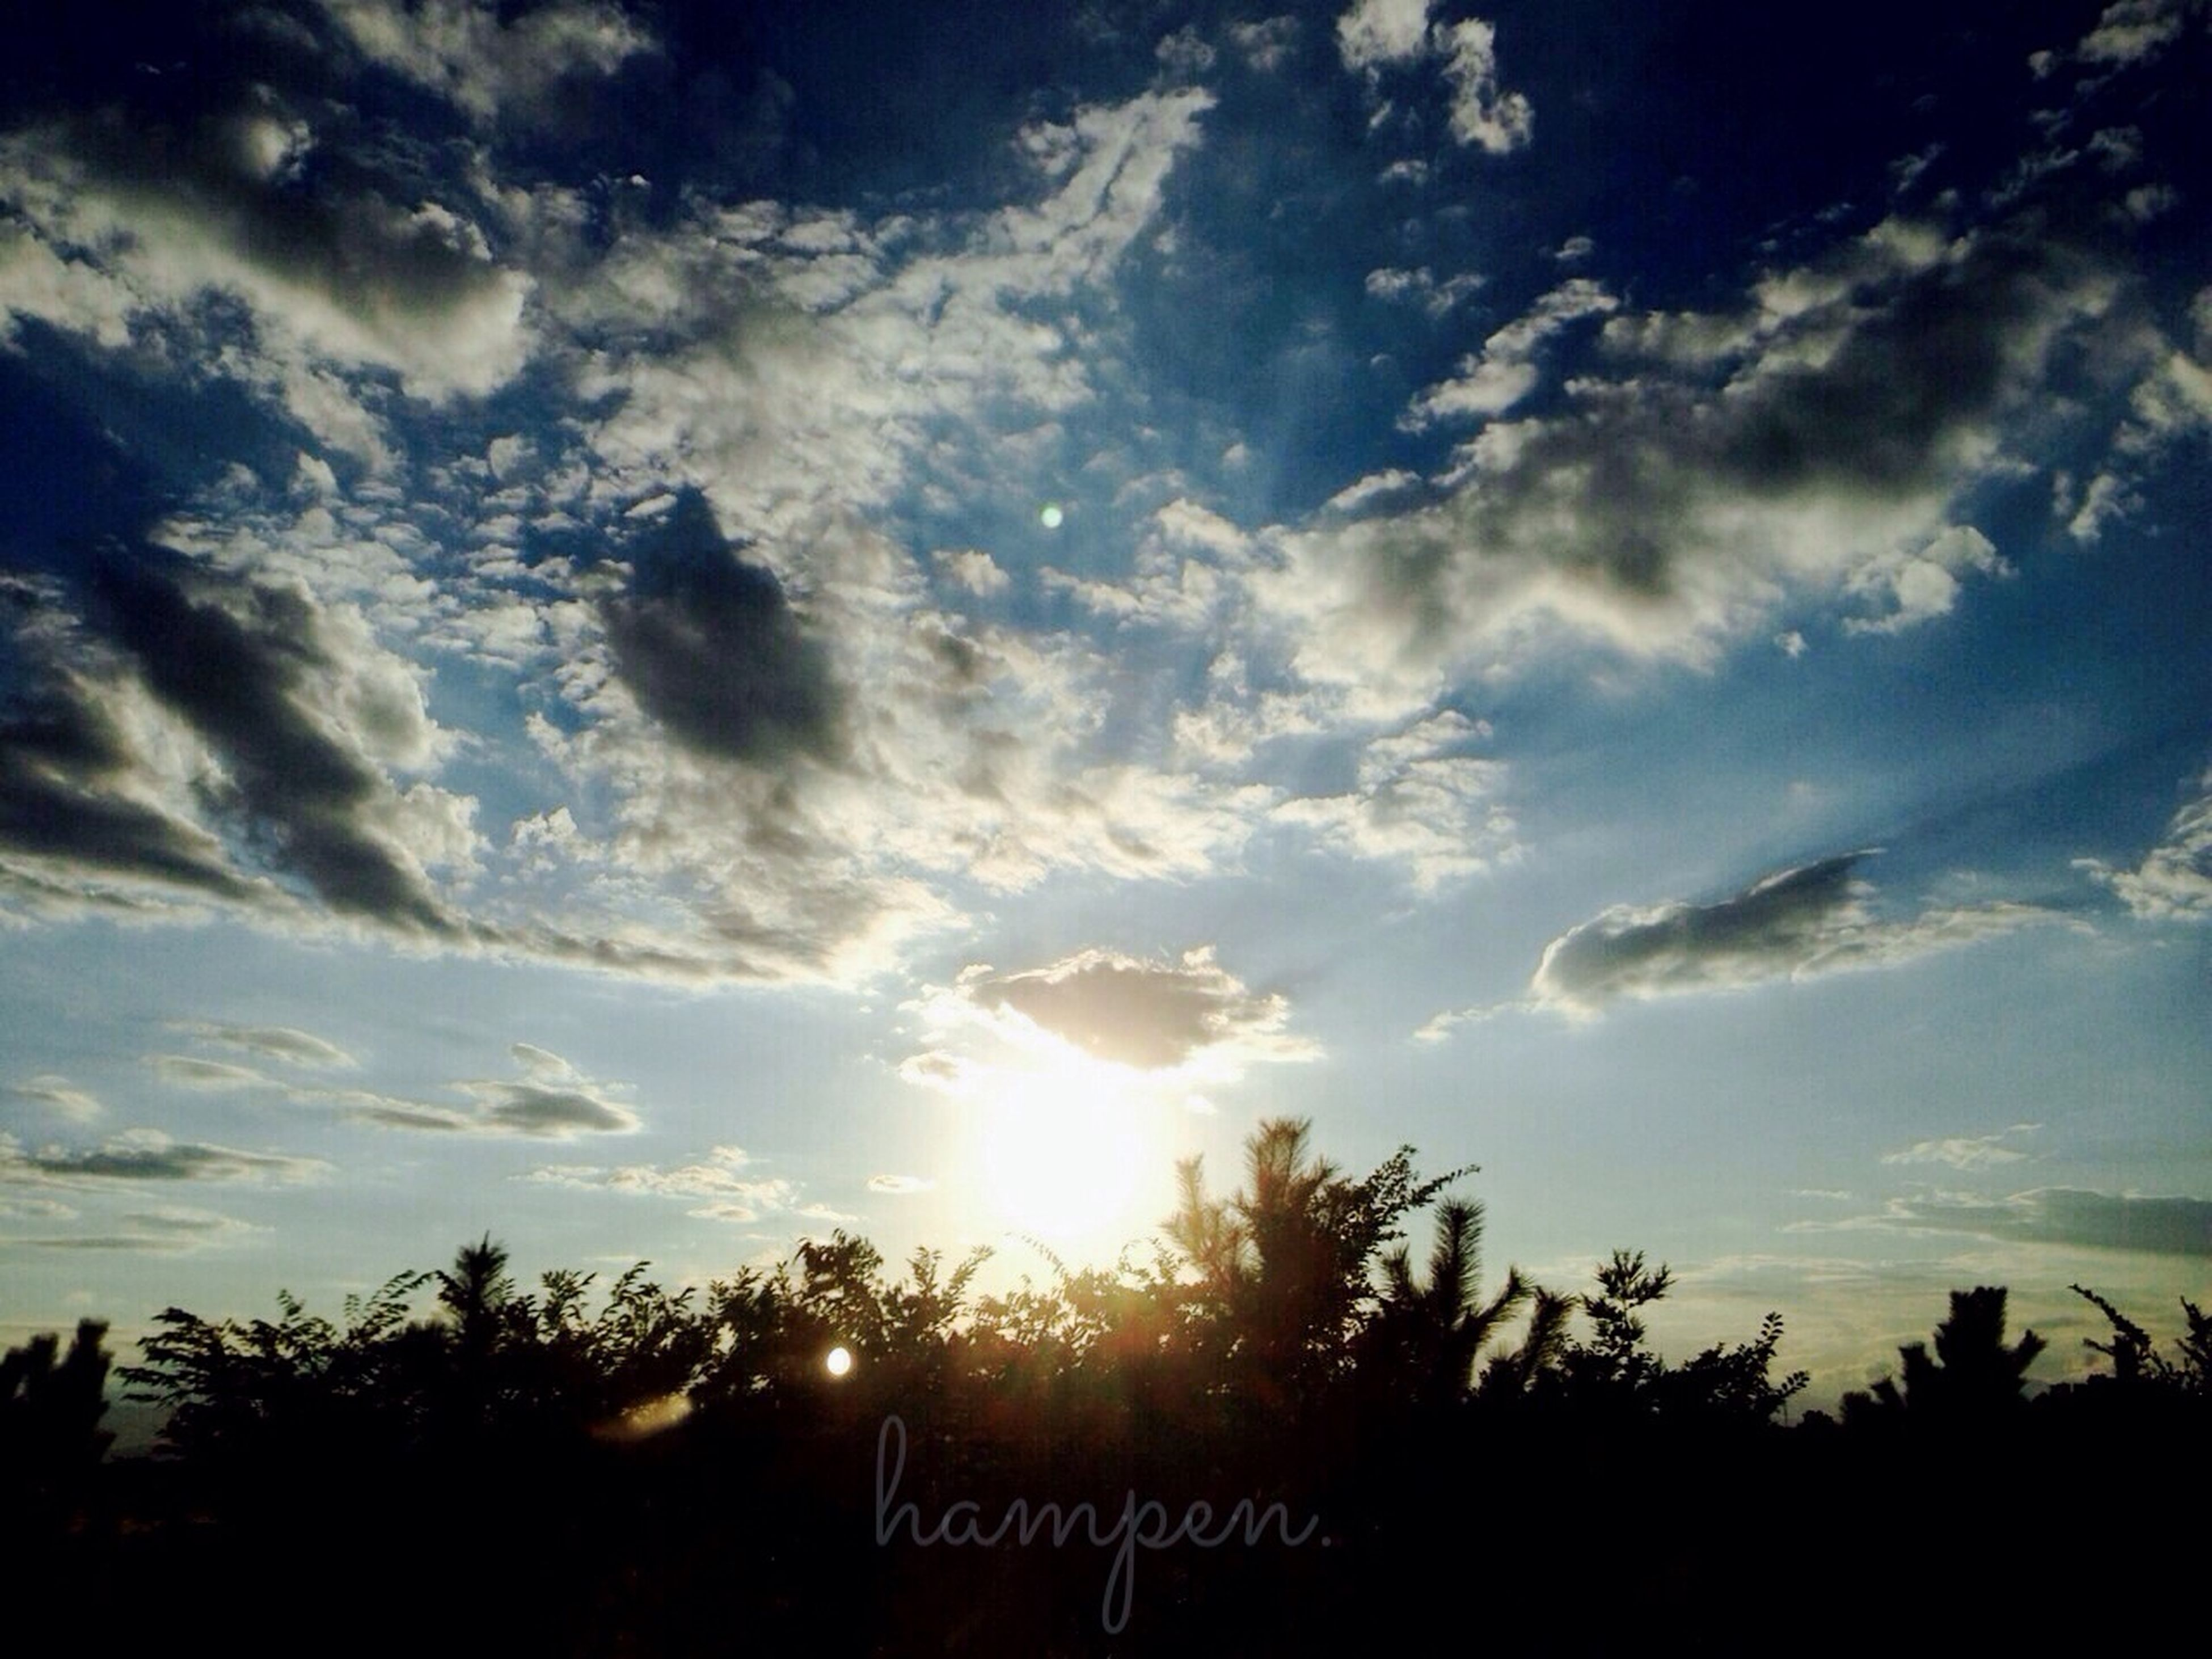 sky, silhouette, cloud - sky, tranquility, sunset, sun, beauty in nature, tranquil scene, scenics, nature, tree, sunbeam, cloud, sunlight, low angle view, idyllic, cloudy, growth, landscape, field